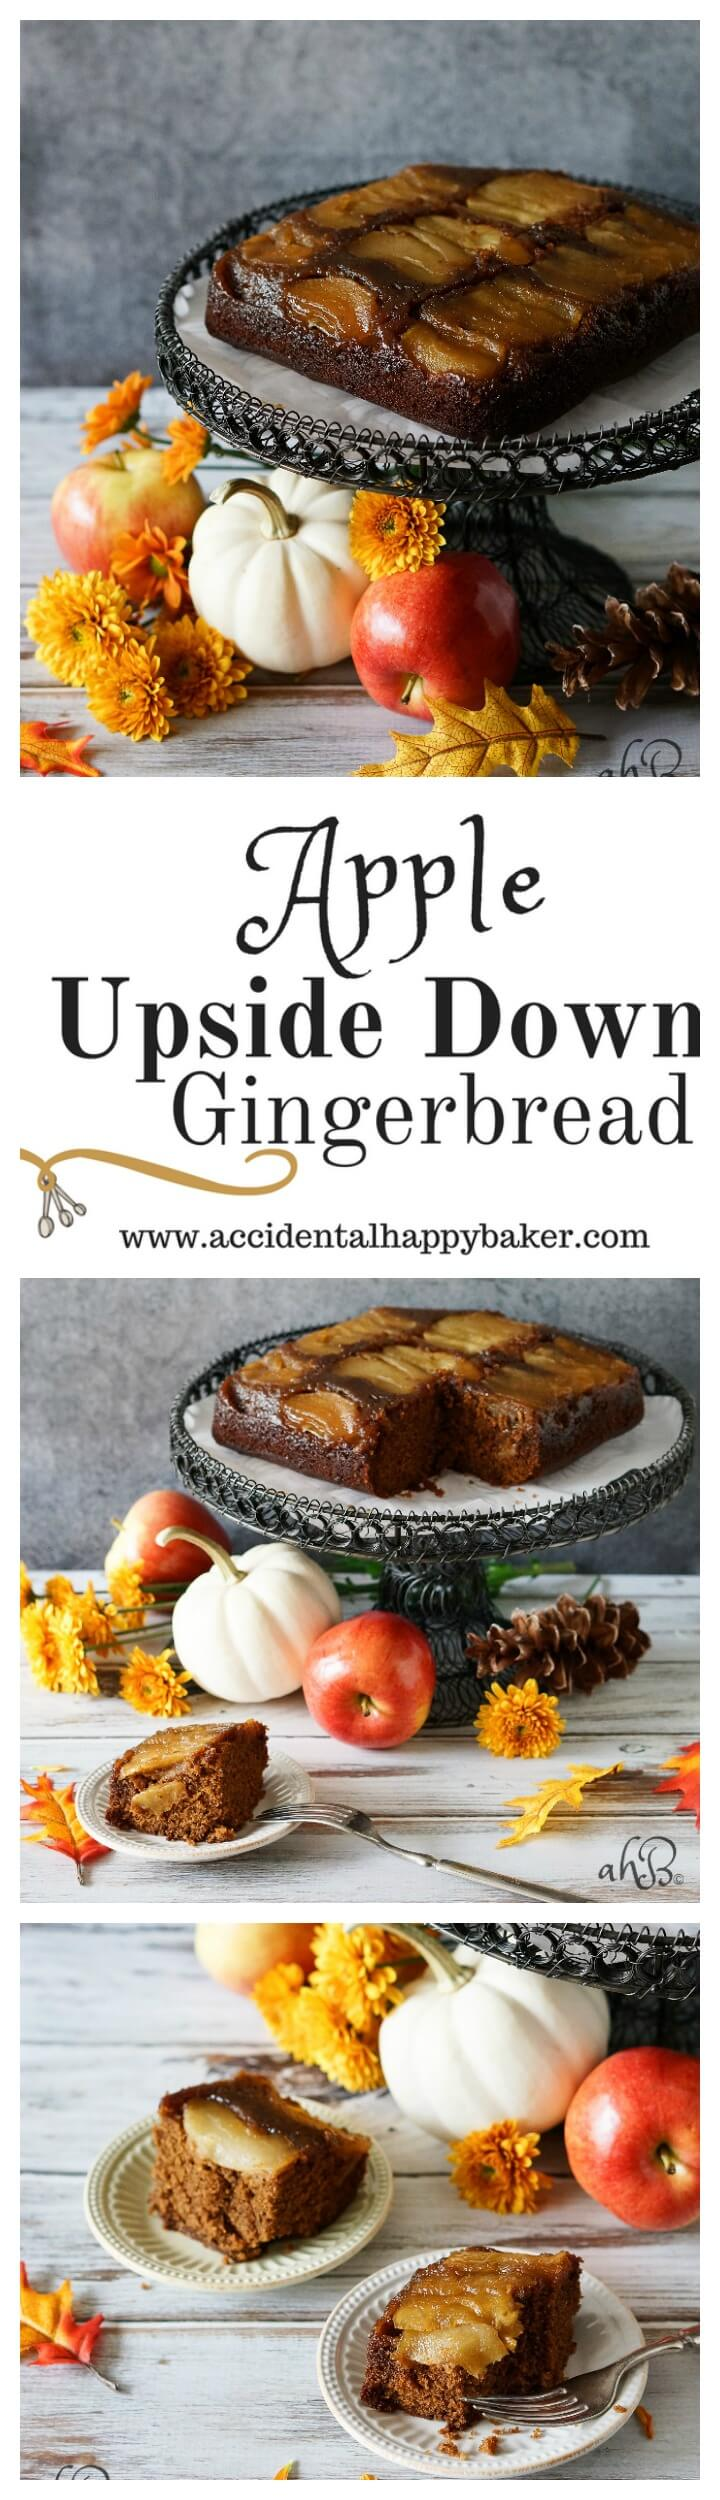 Apple Upside Down Gingerbread